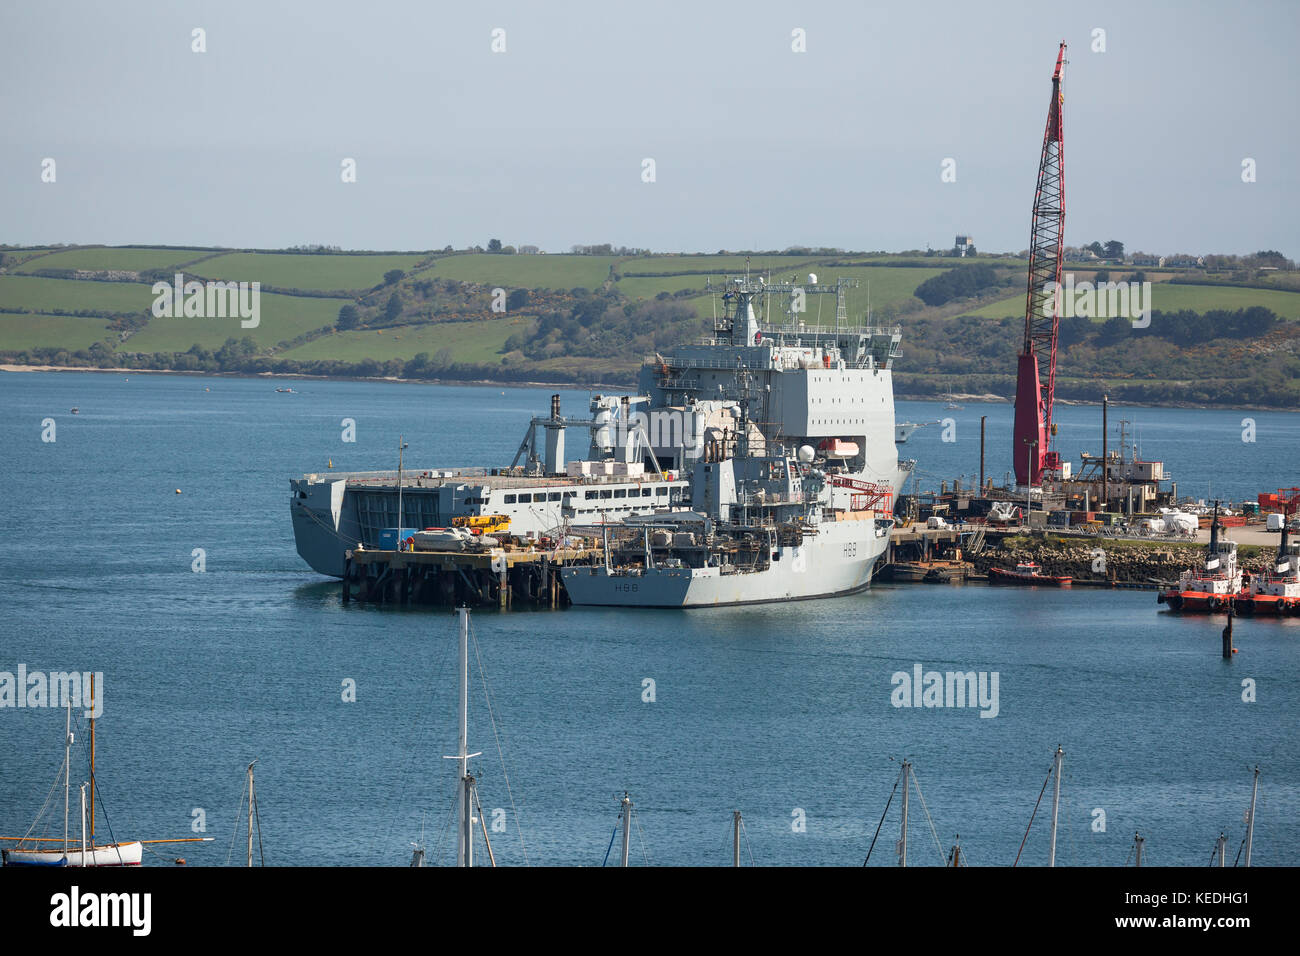 HMS Mounts Bay in home port of Falmouth UK with HMS Enterprise alongside Stock Photo